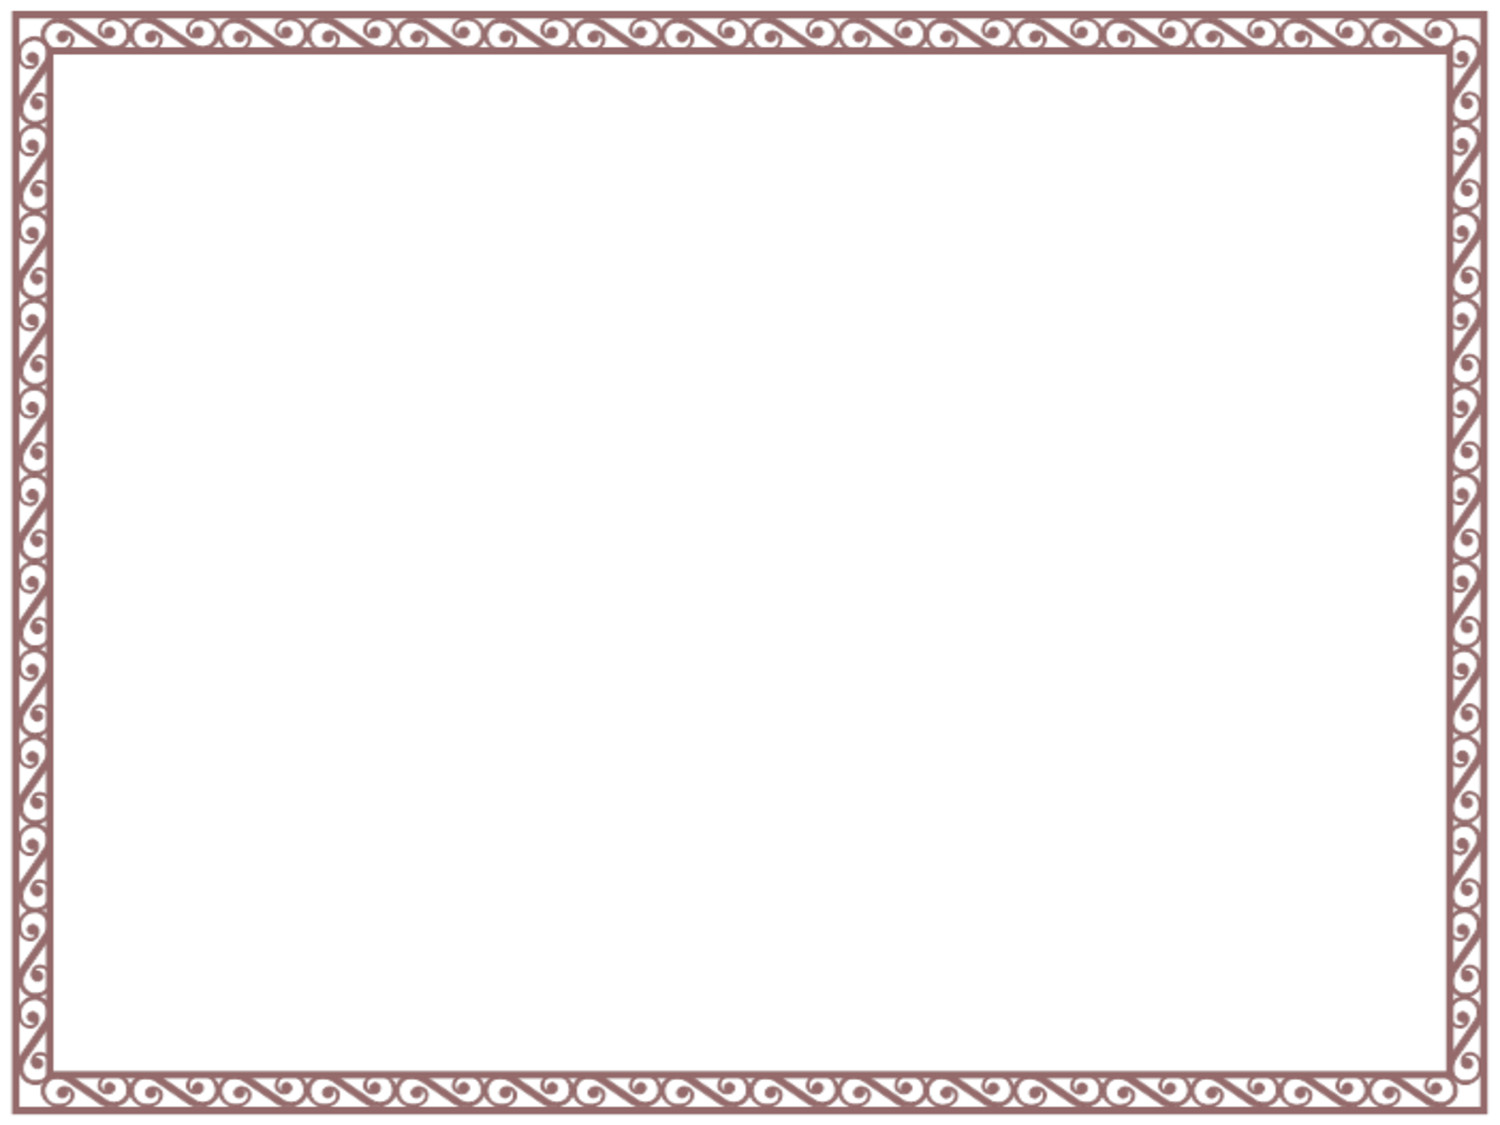 Borders Template for Word Free Certificate Borders Download Free Clip Art Free